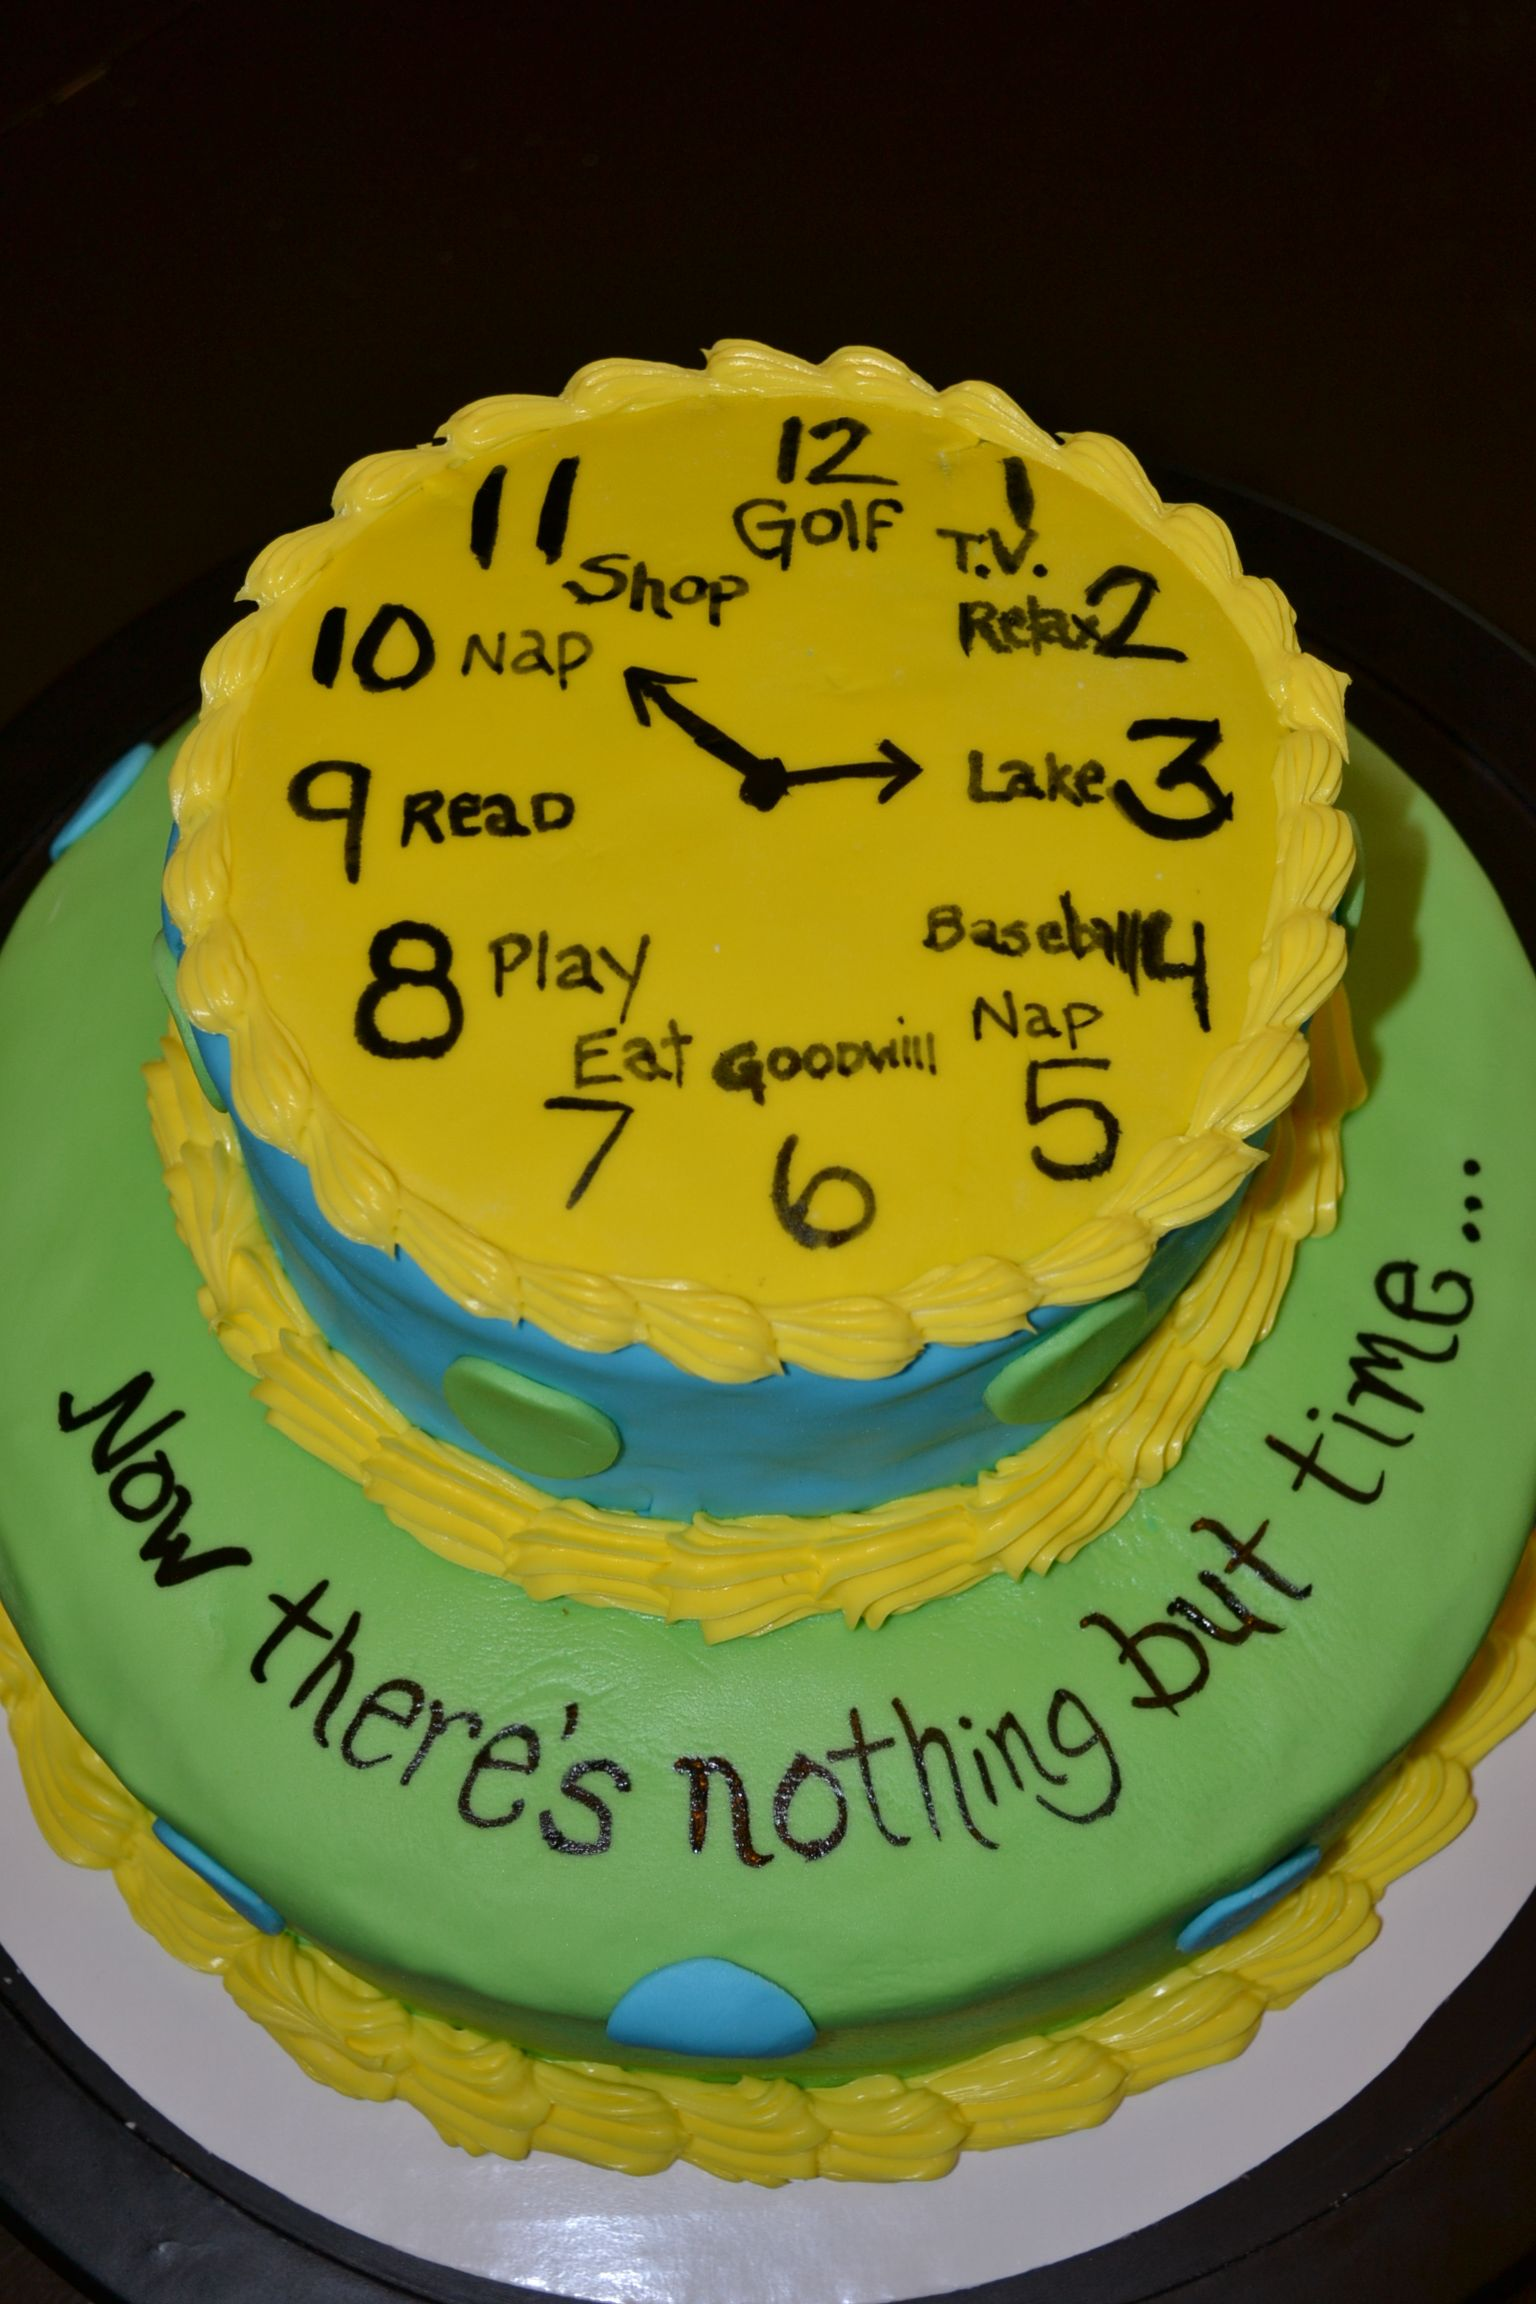 Cake Decoration Ideas For Retirement : Nothing but time - Retirement Cake Sue Ann s Custom ...